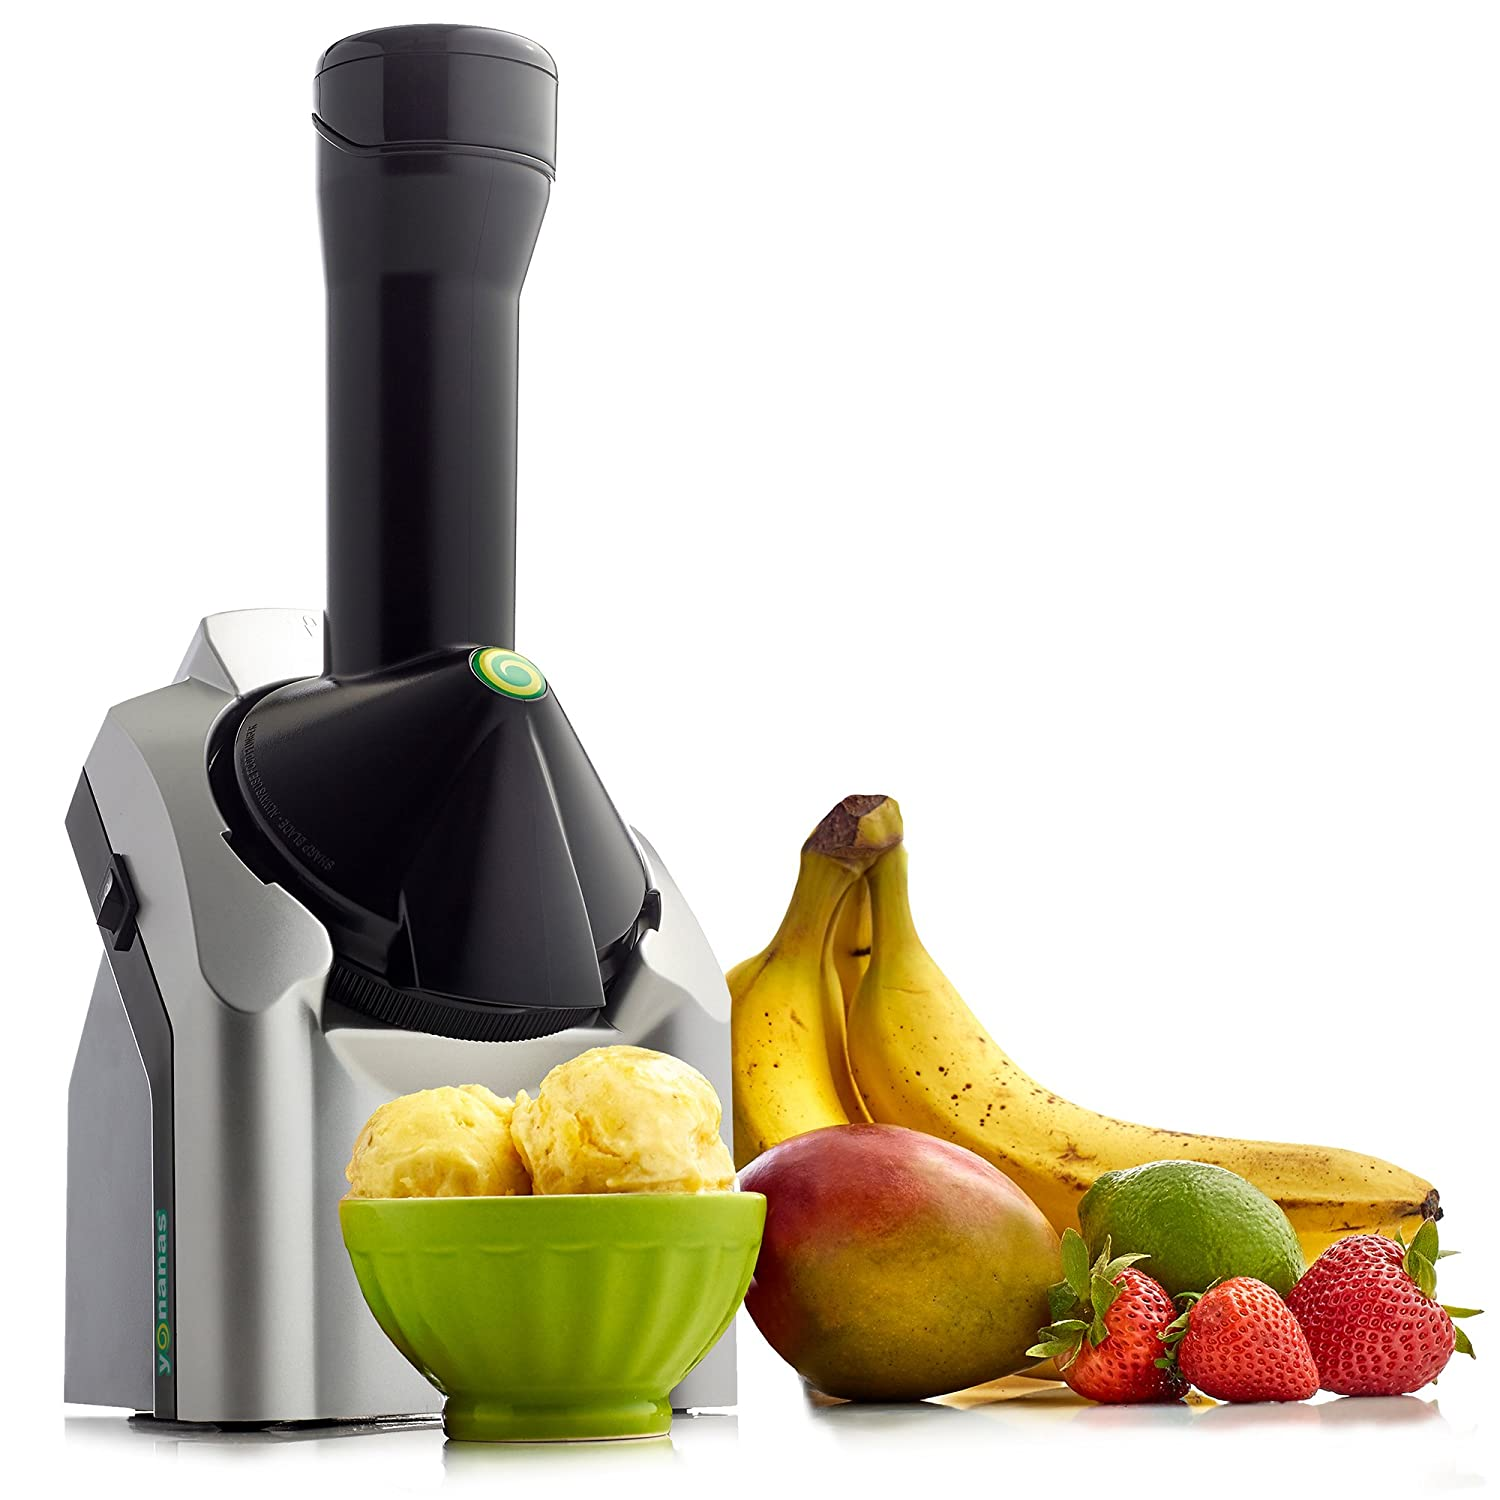 Yonanas 902 Classic Original Healthy Dessert Fruit Soft Serve Maker Creates Fast Easy Delicious Dairy Free Vegan Alternatives to Ice Cream Frozen Yogurt Sorbet Includes Recipe Book BPA Free, Silver